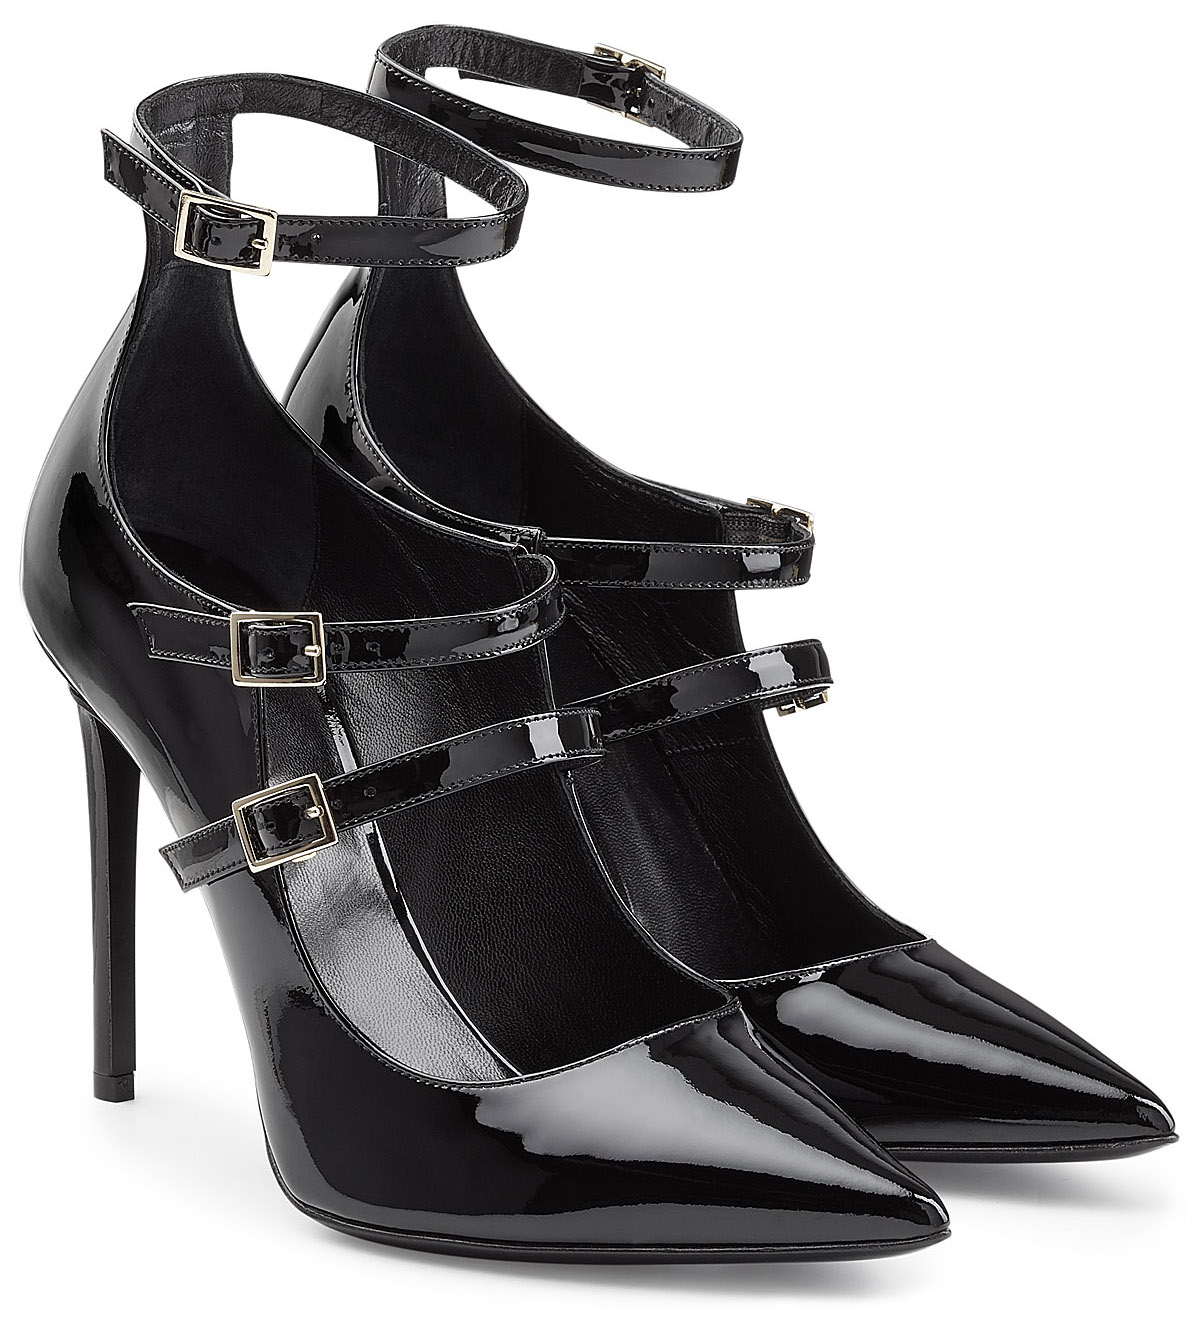 Tamara Mellon black patent leather pumps